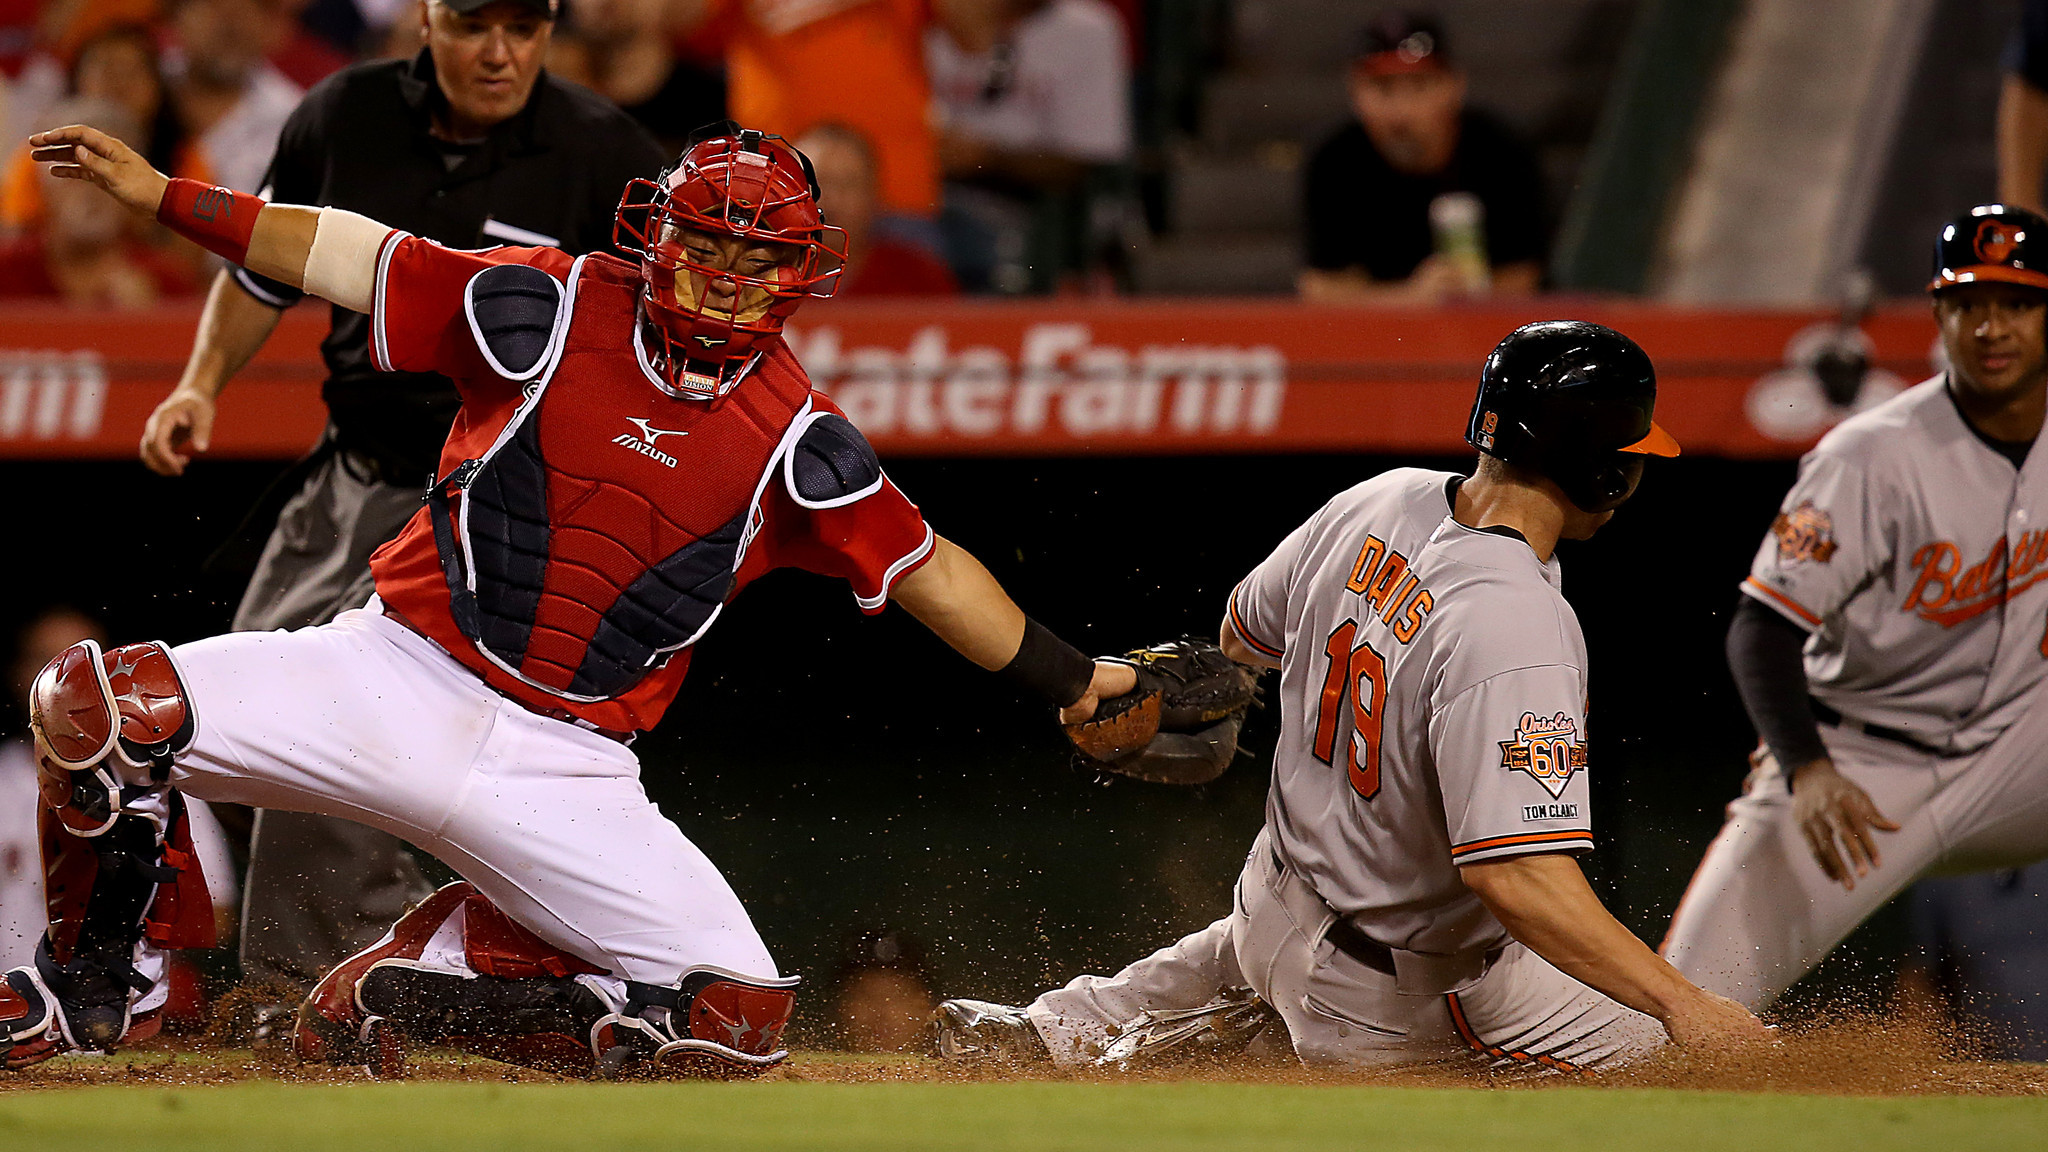 Angels fall short in 4-2 loss to Orioles